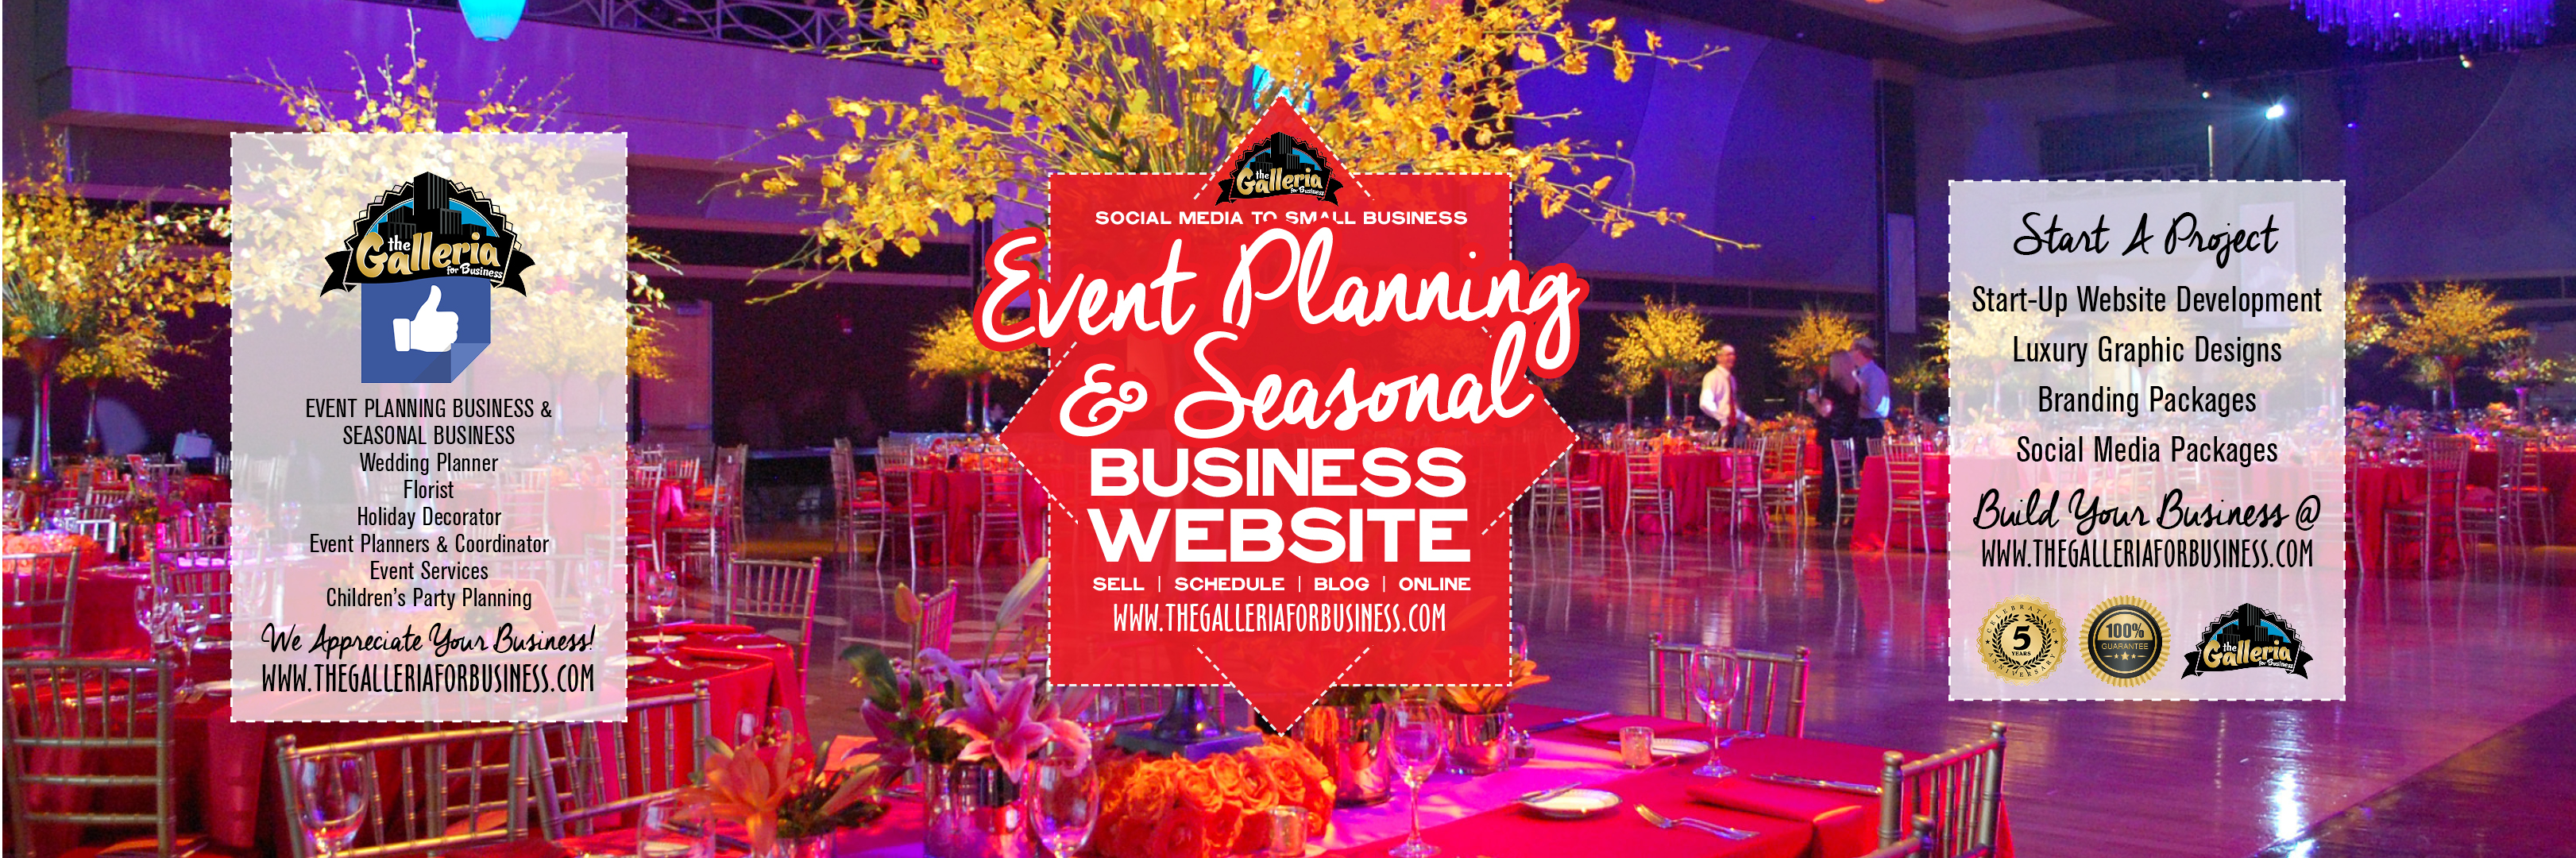 Event Planning Seasonal Business